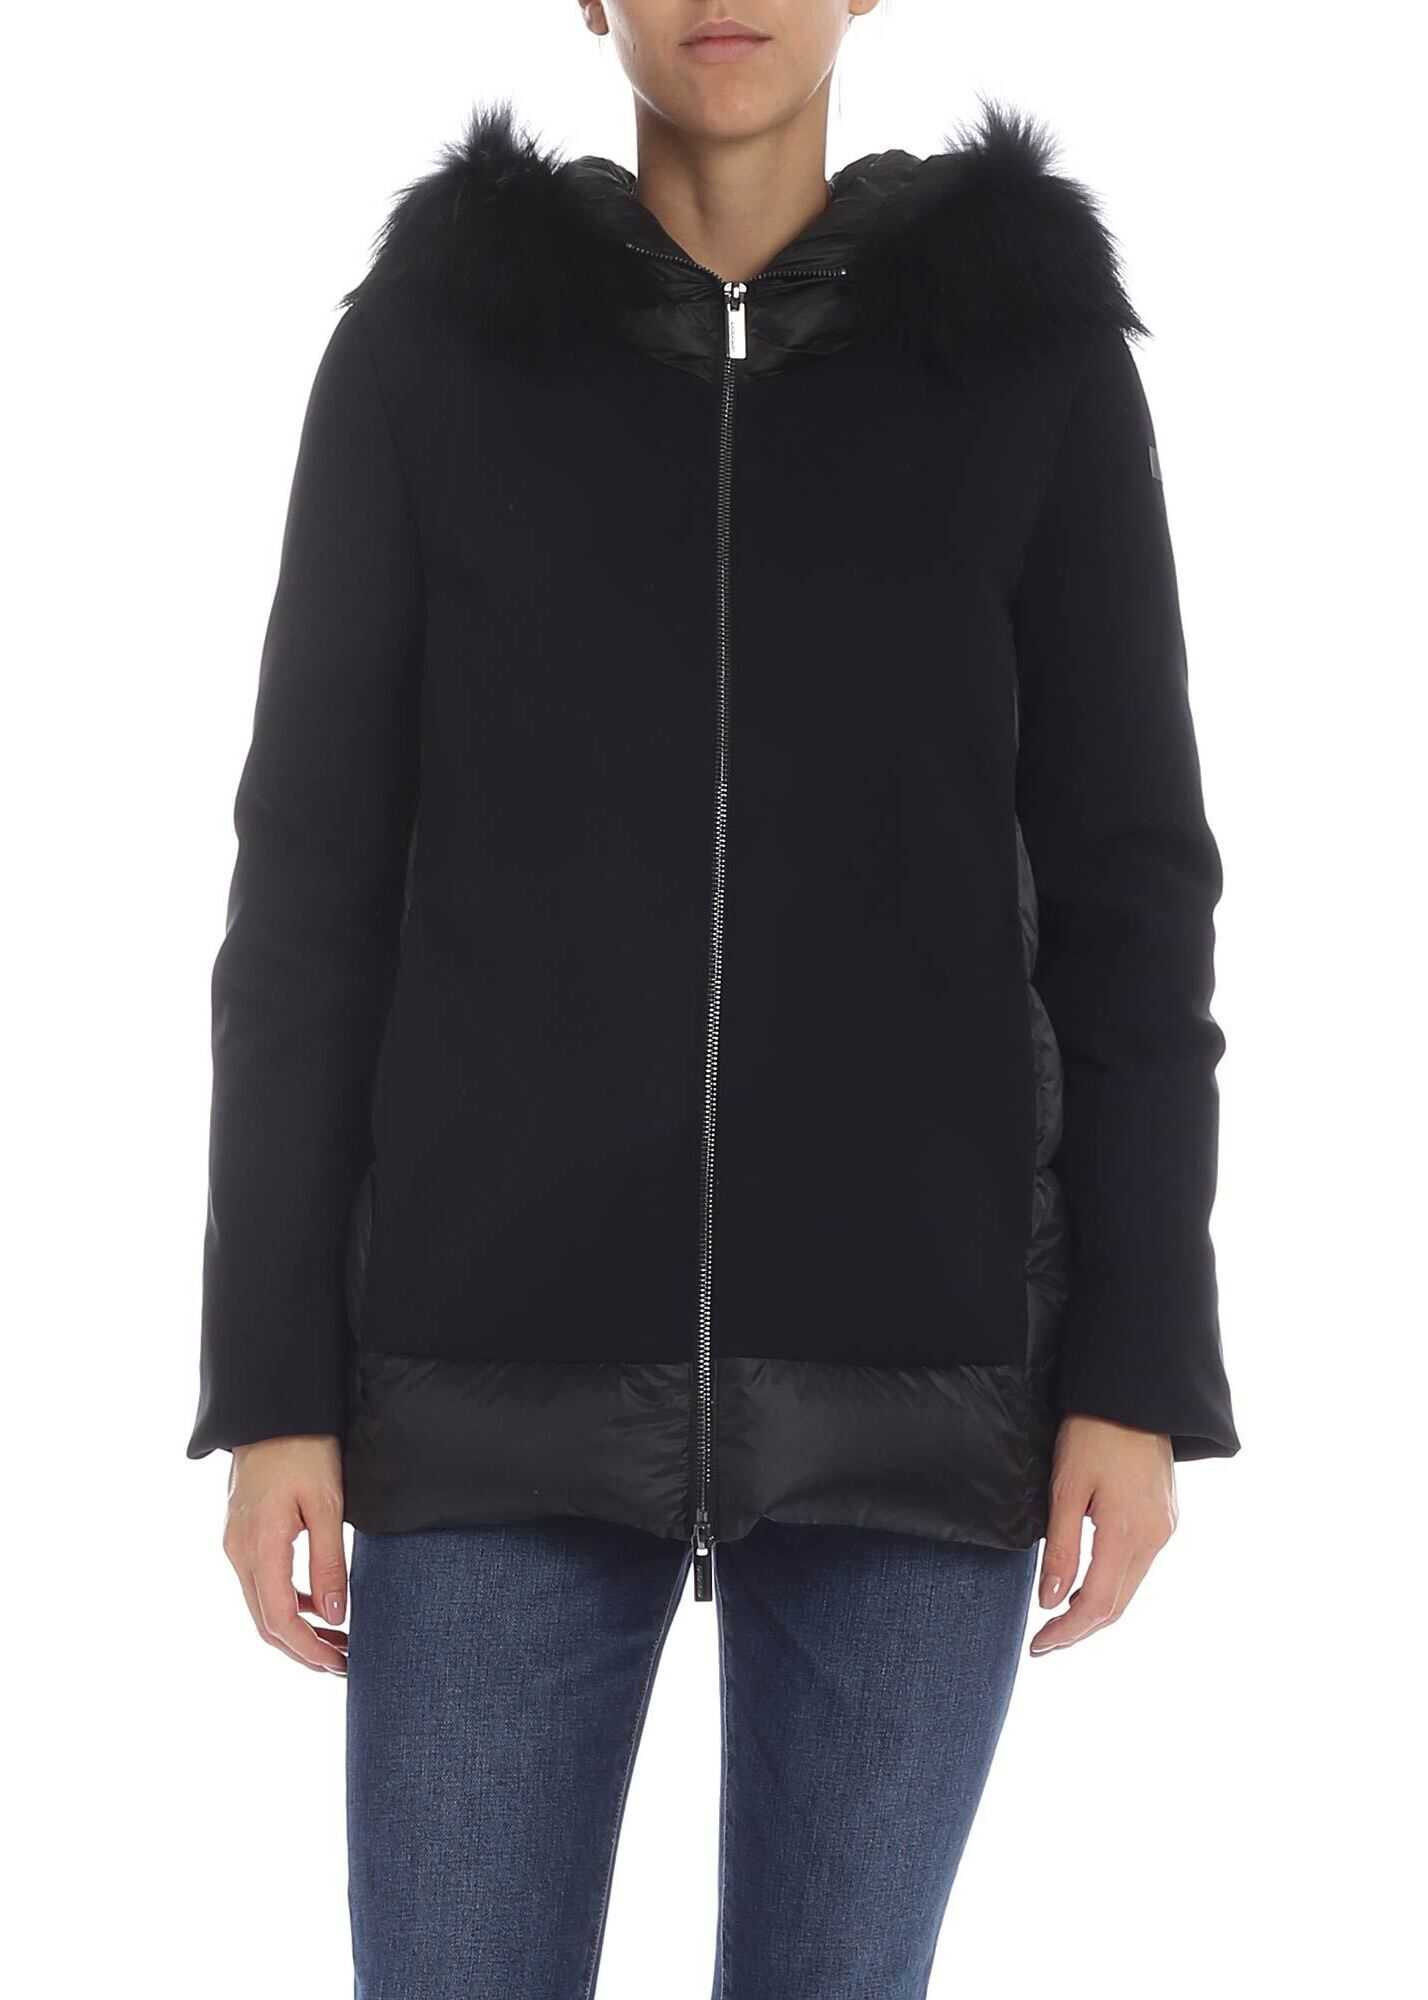 Zara Winter Hybrid Down Jacket In Black thumbnail